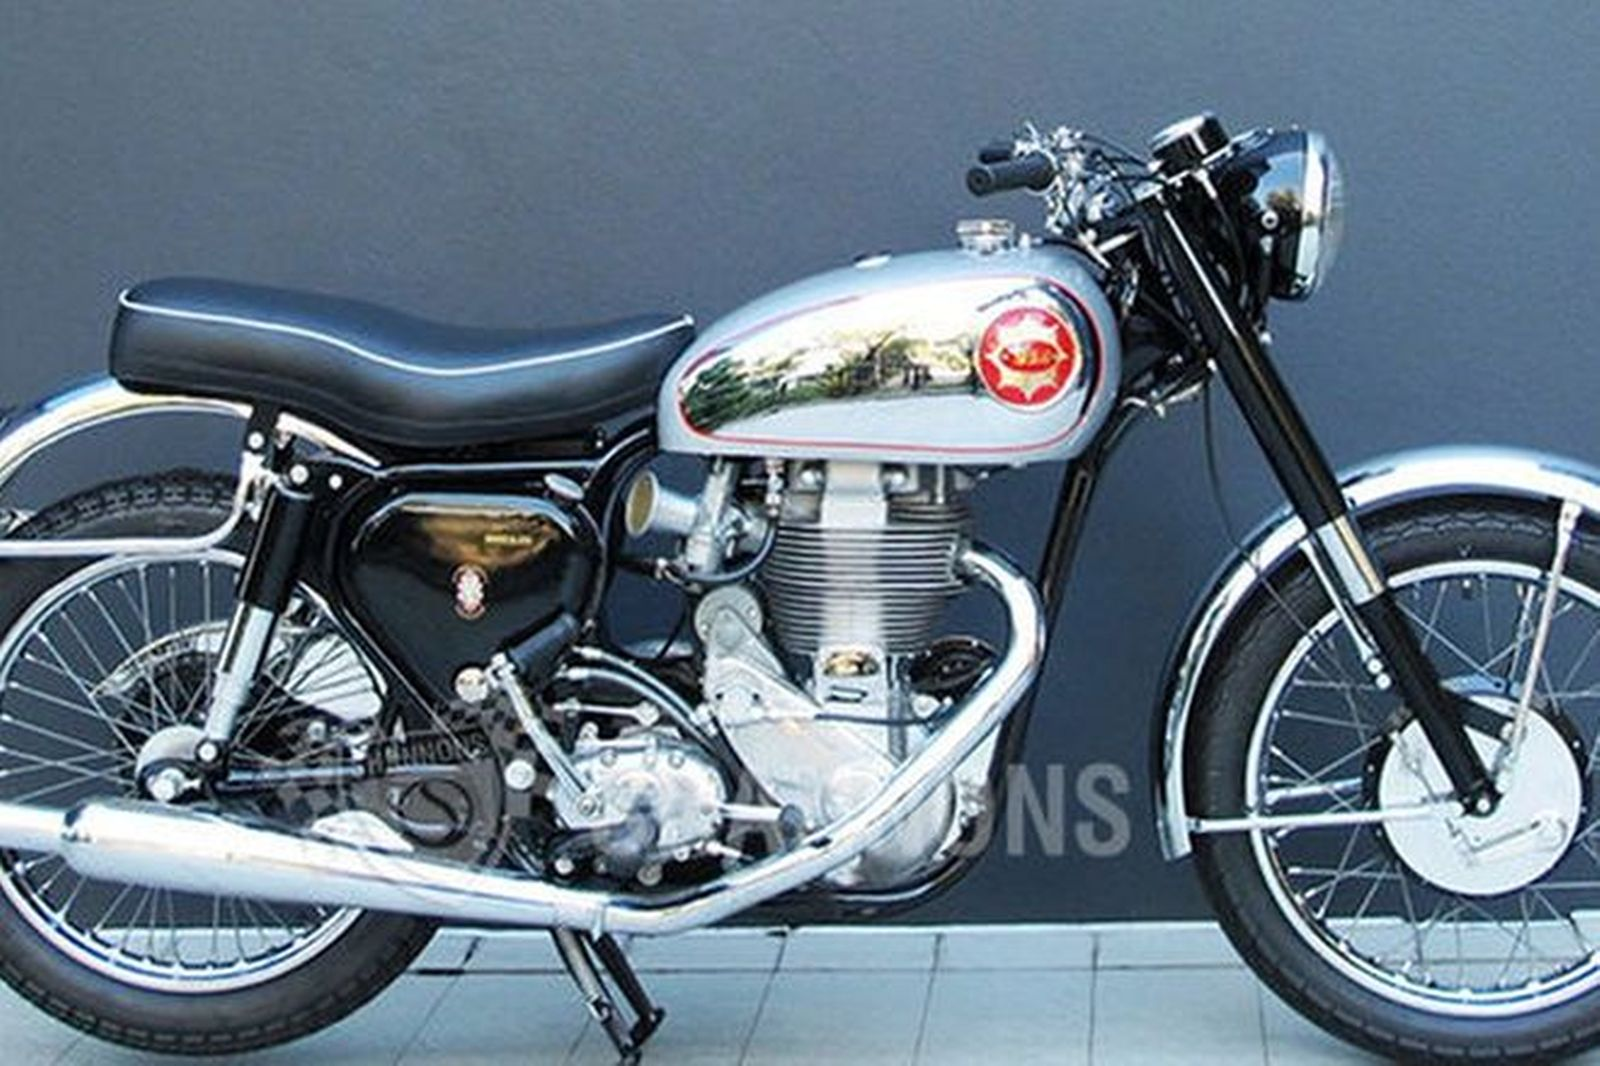 Bsa Star Touring Motorcycle